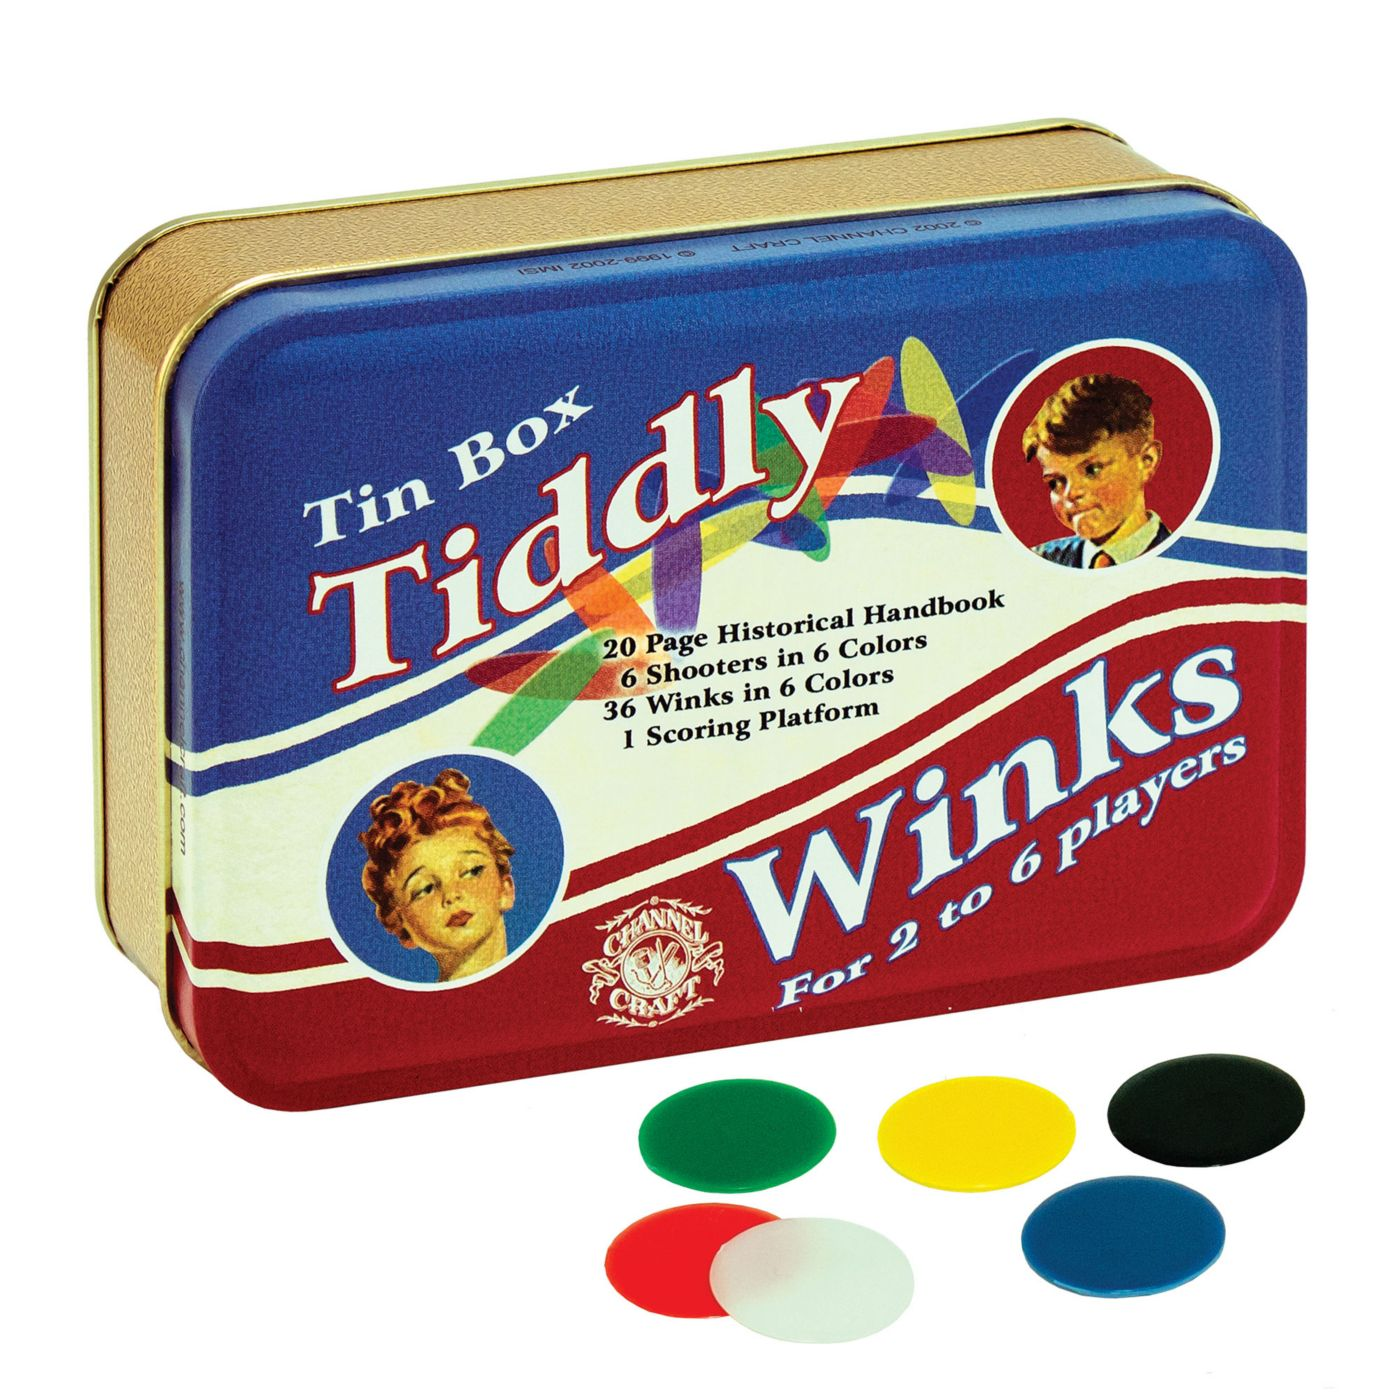 Channel Craft Toy Tin Tiddly Winks